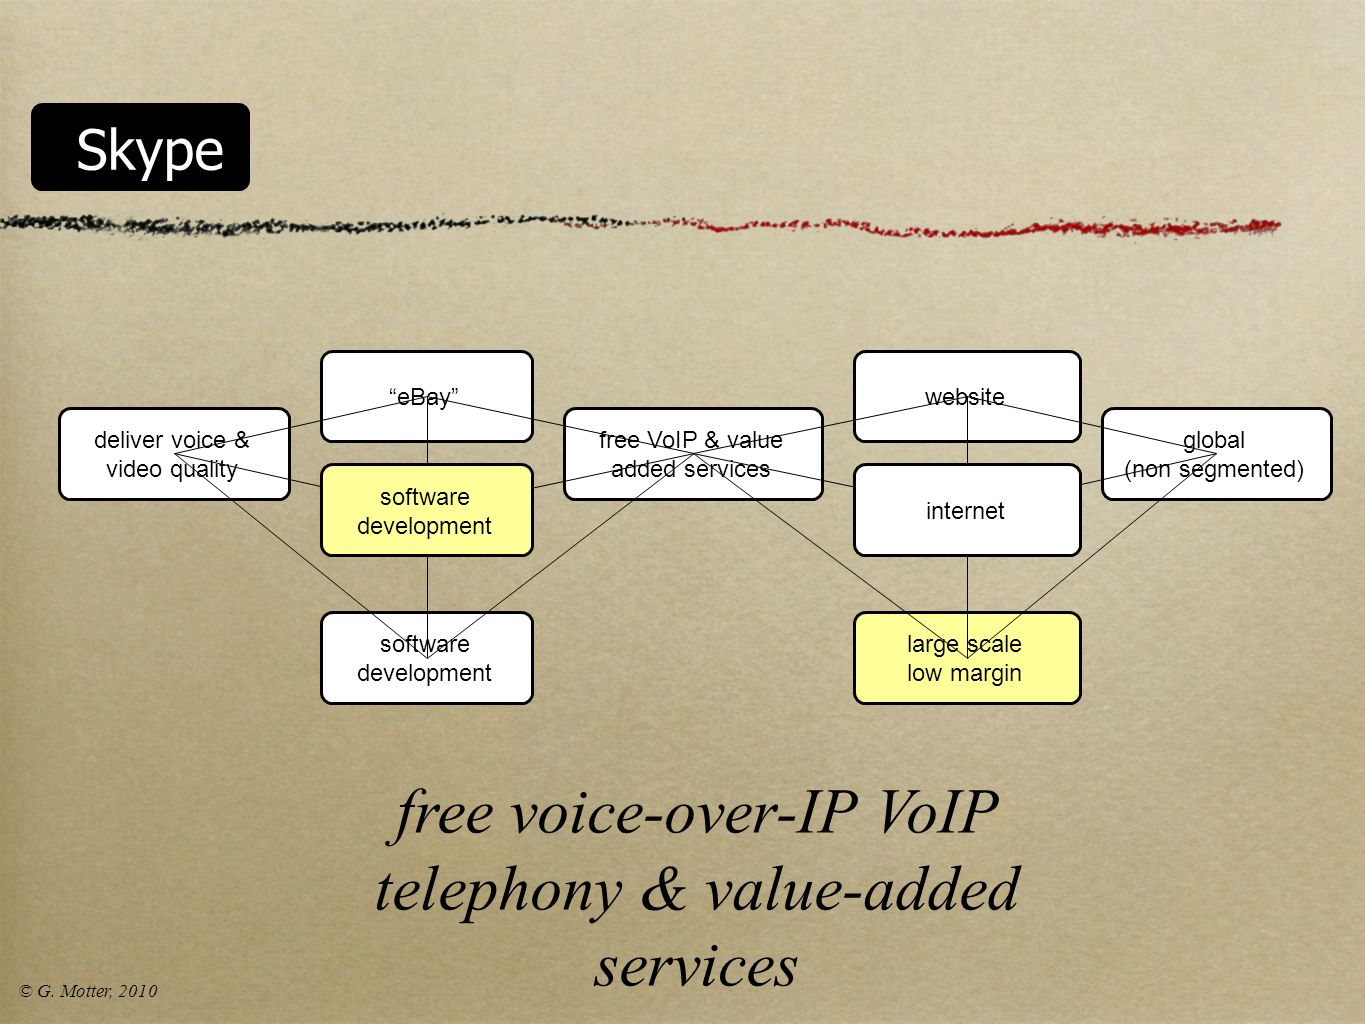 free voice-over-IP VoIP telephony & value-added services